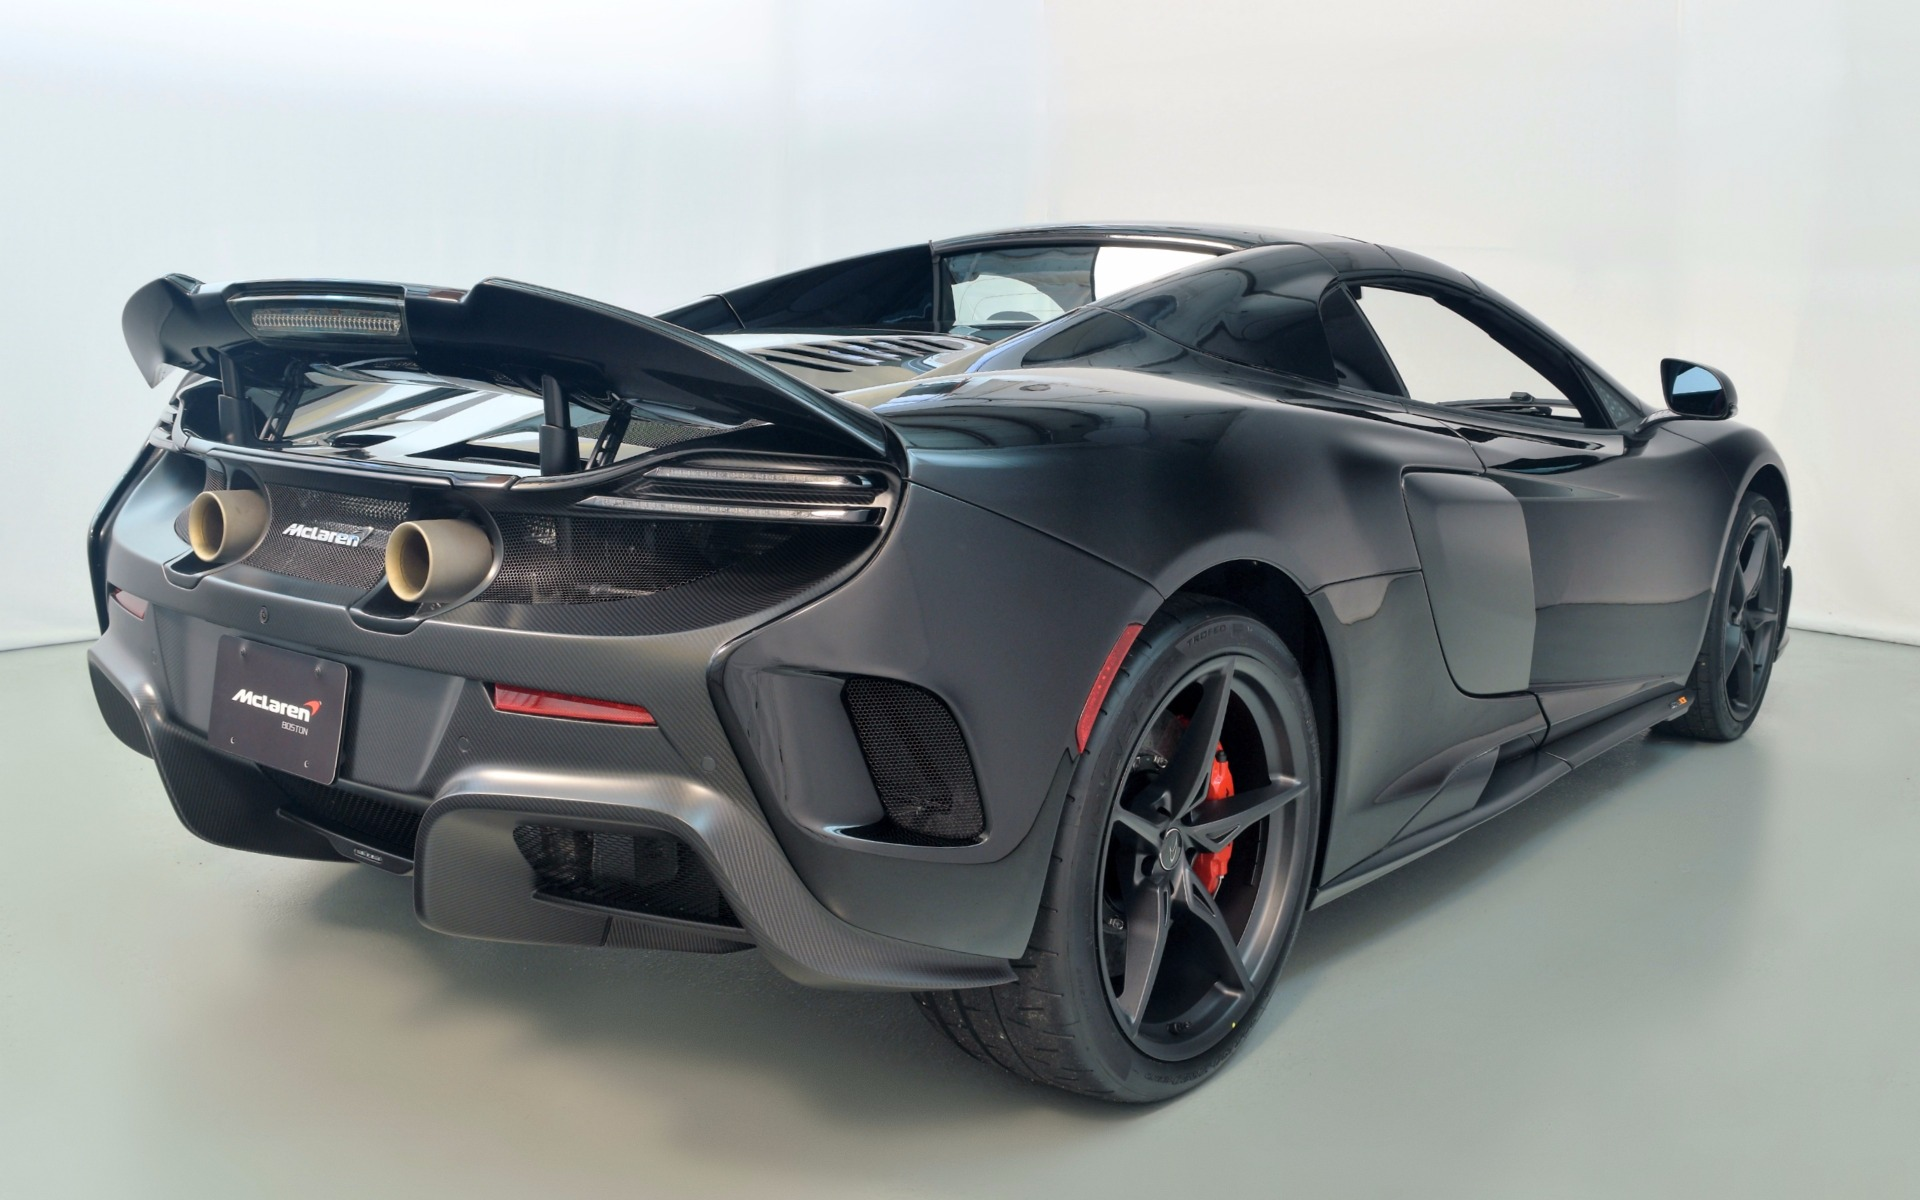 Lease To Own Car >> 2016 MCLAREN 675 LT SPIDER For Sale in Norwell, MA 675760 ...